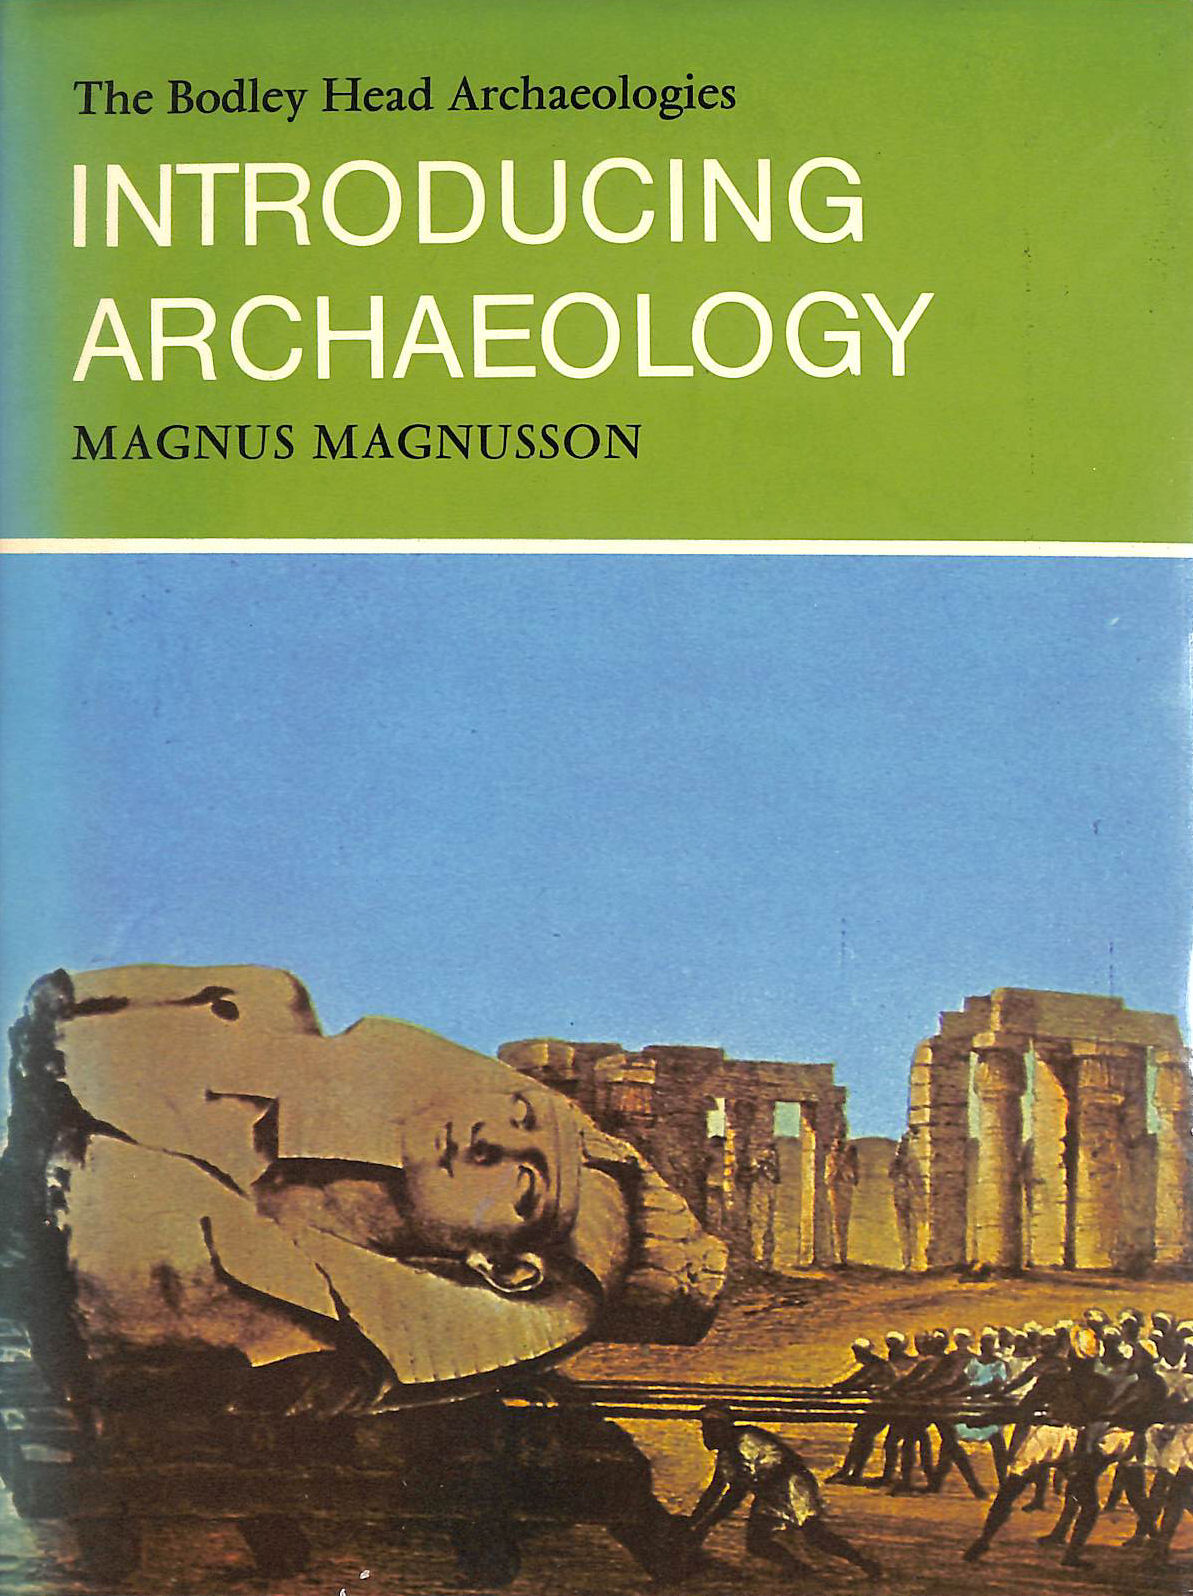 Image for Introducing Archaeology (Bodley Head Archaeology)